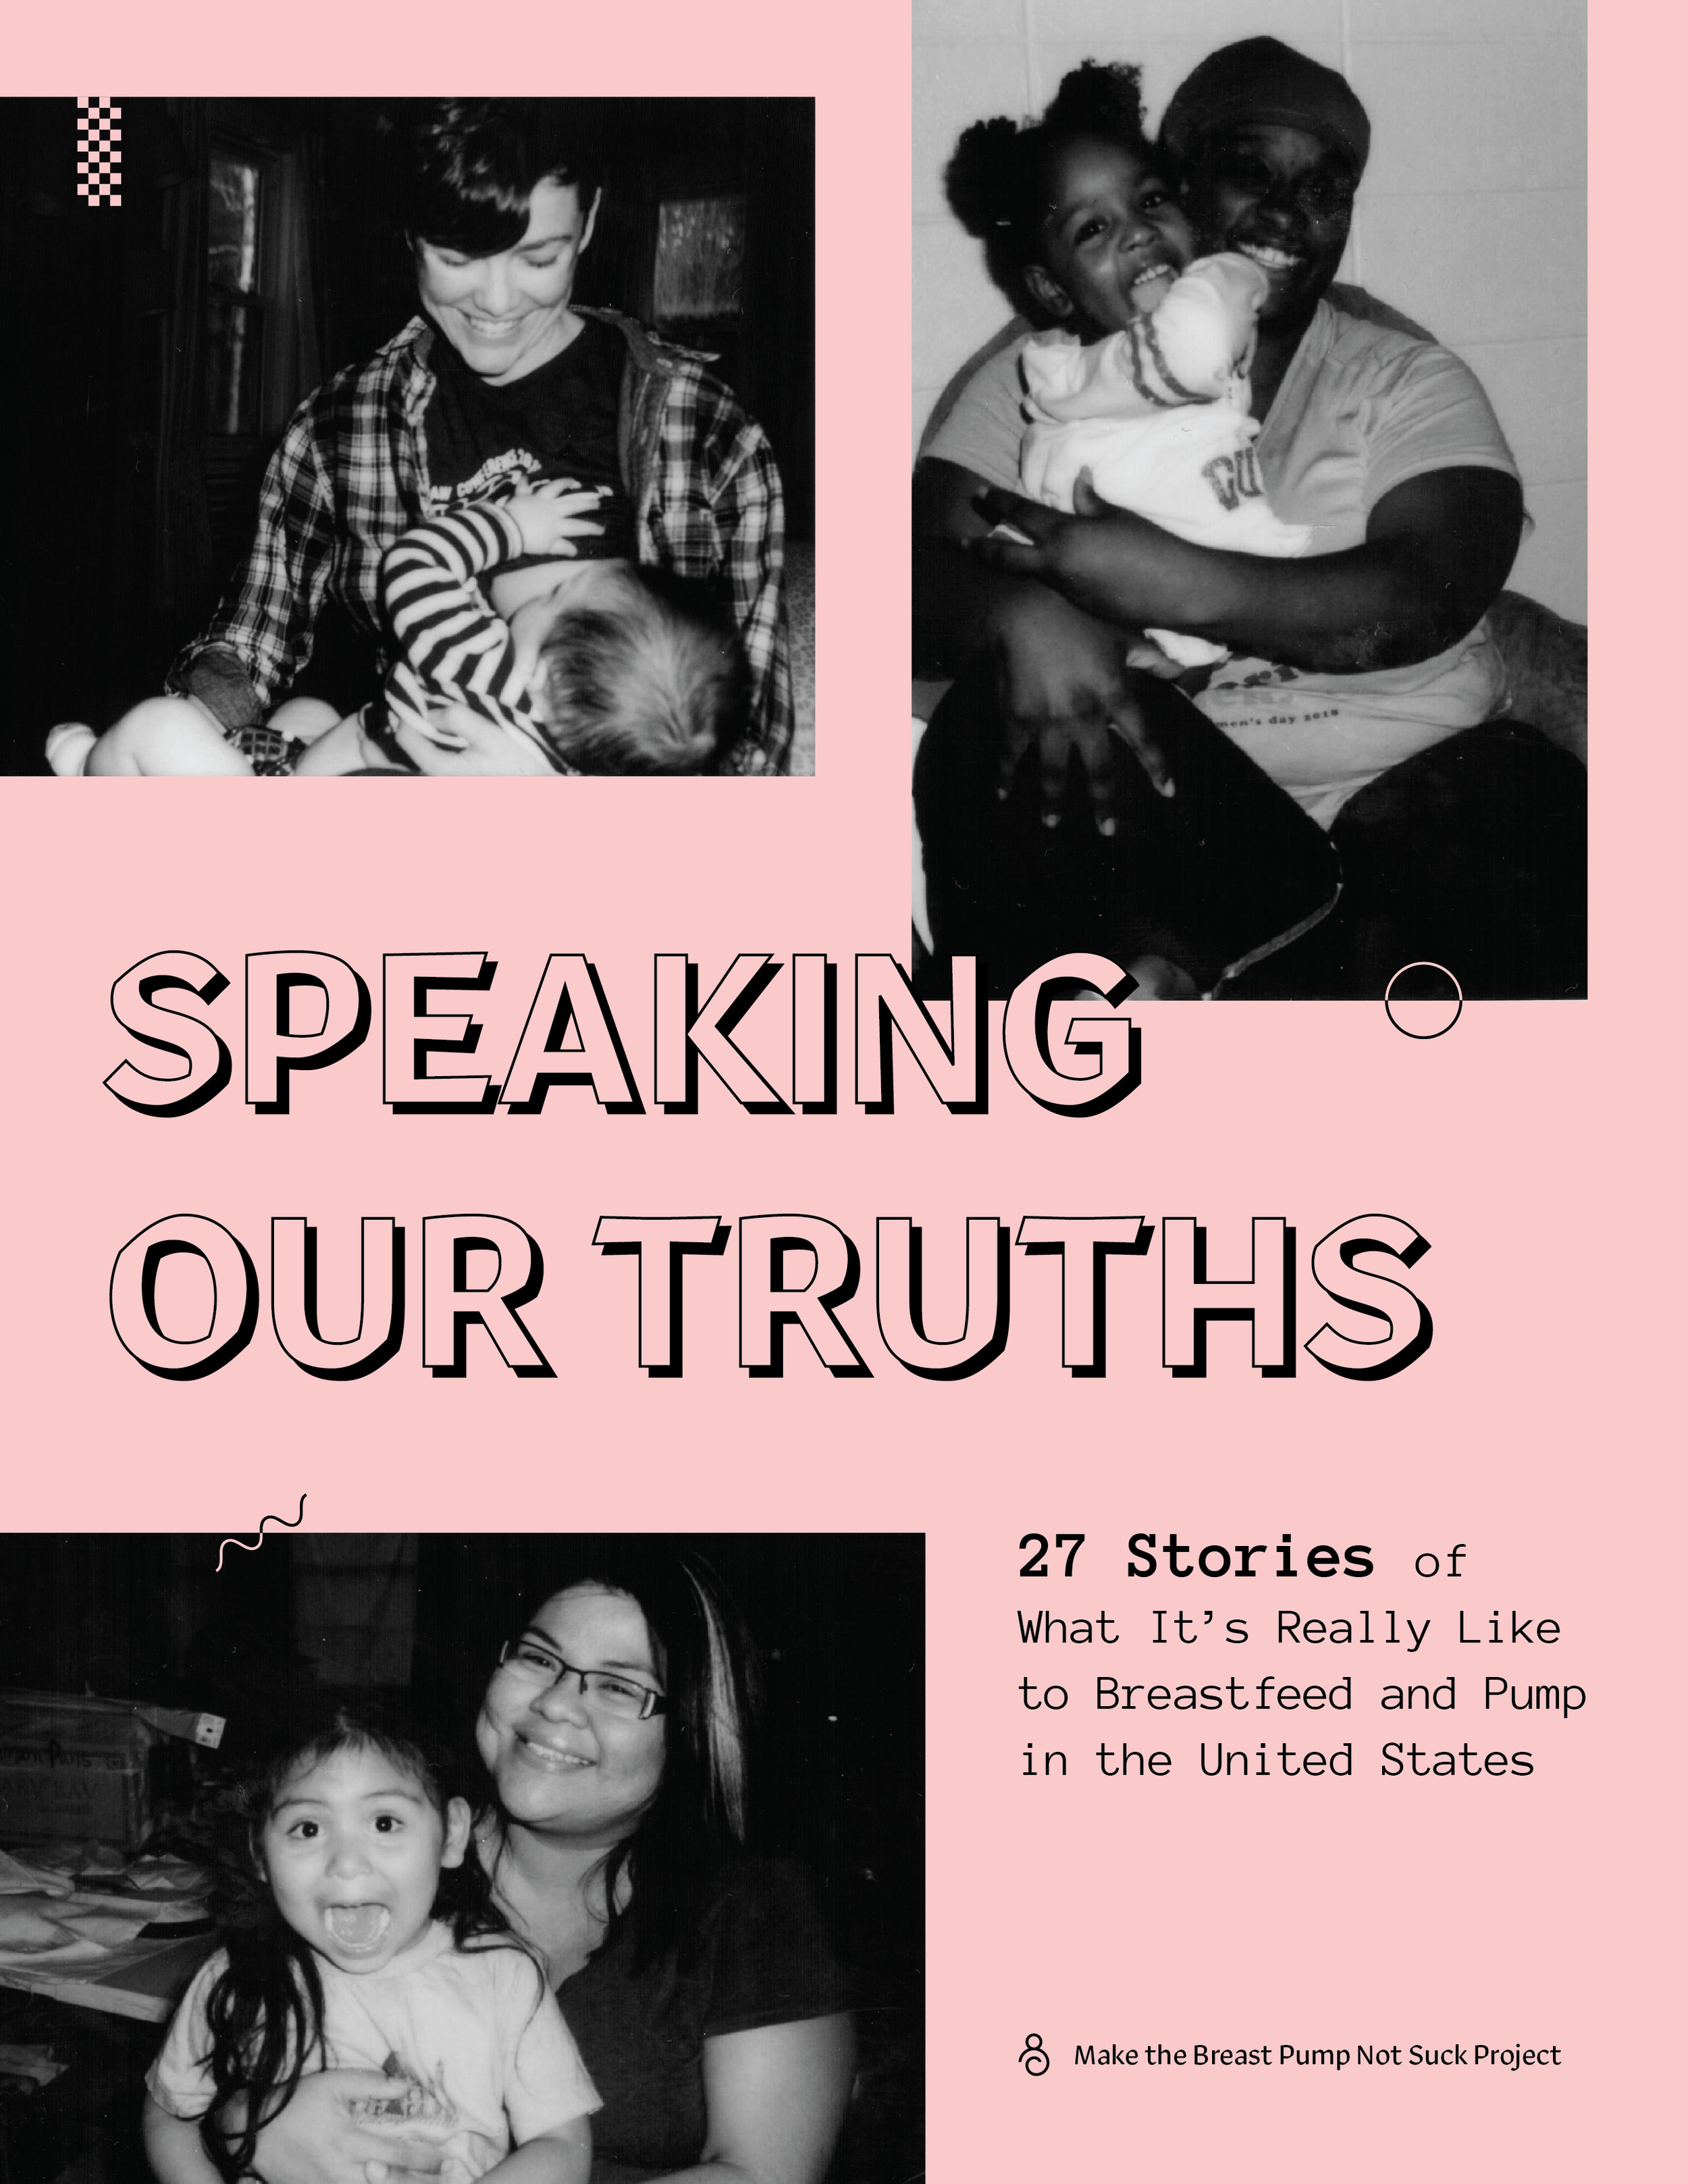 Speaking Our Truths - 27 Stories of What It's Really Like to Breastfeed and Pump in the United StatesDownload a PDF of the book.To buy a copy, please Paypal the suggested donation of $10 to info@ikatun.com and email us your shipping address as well.